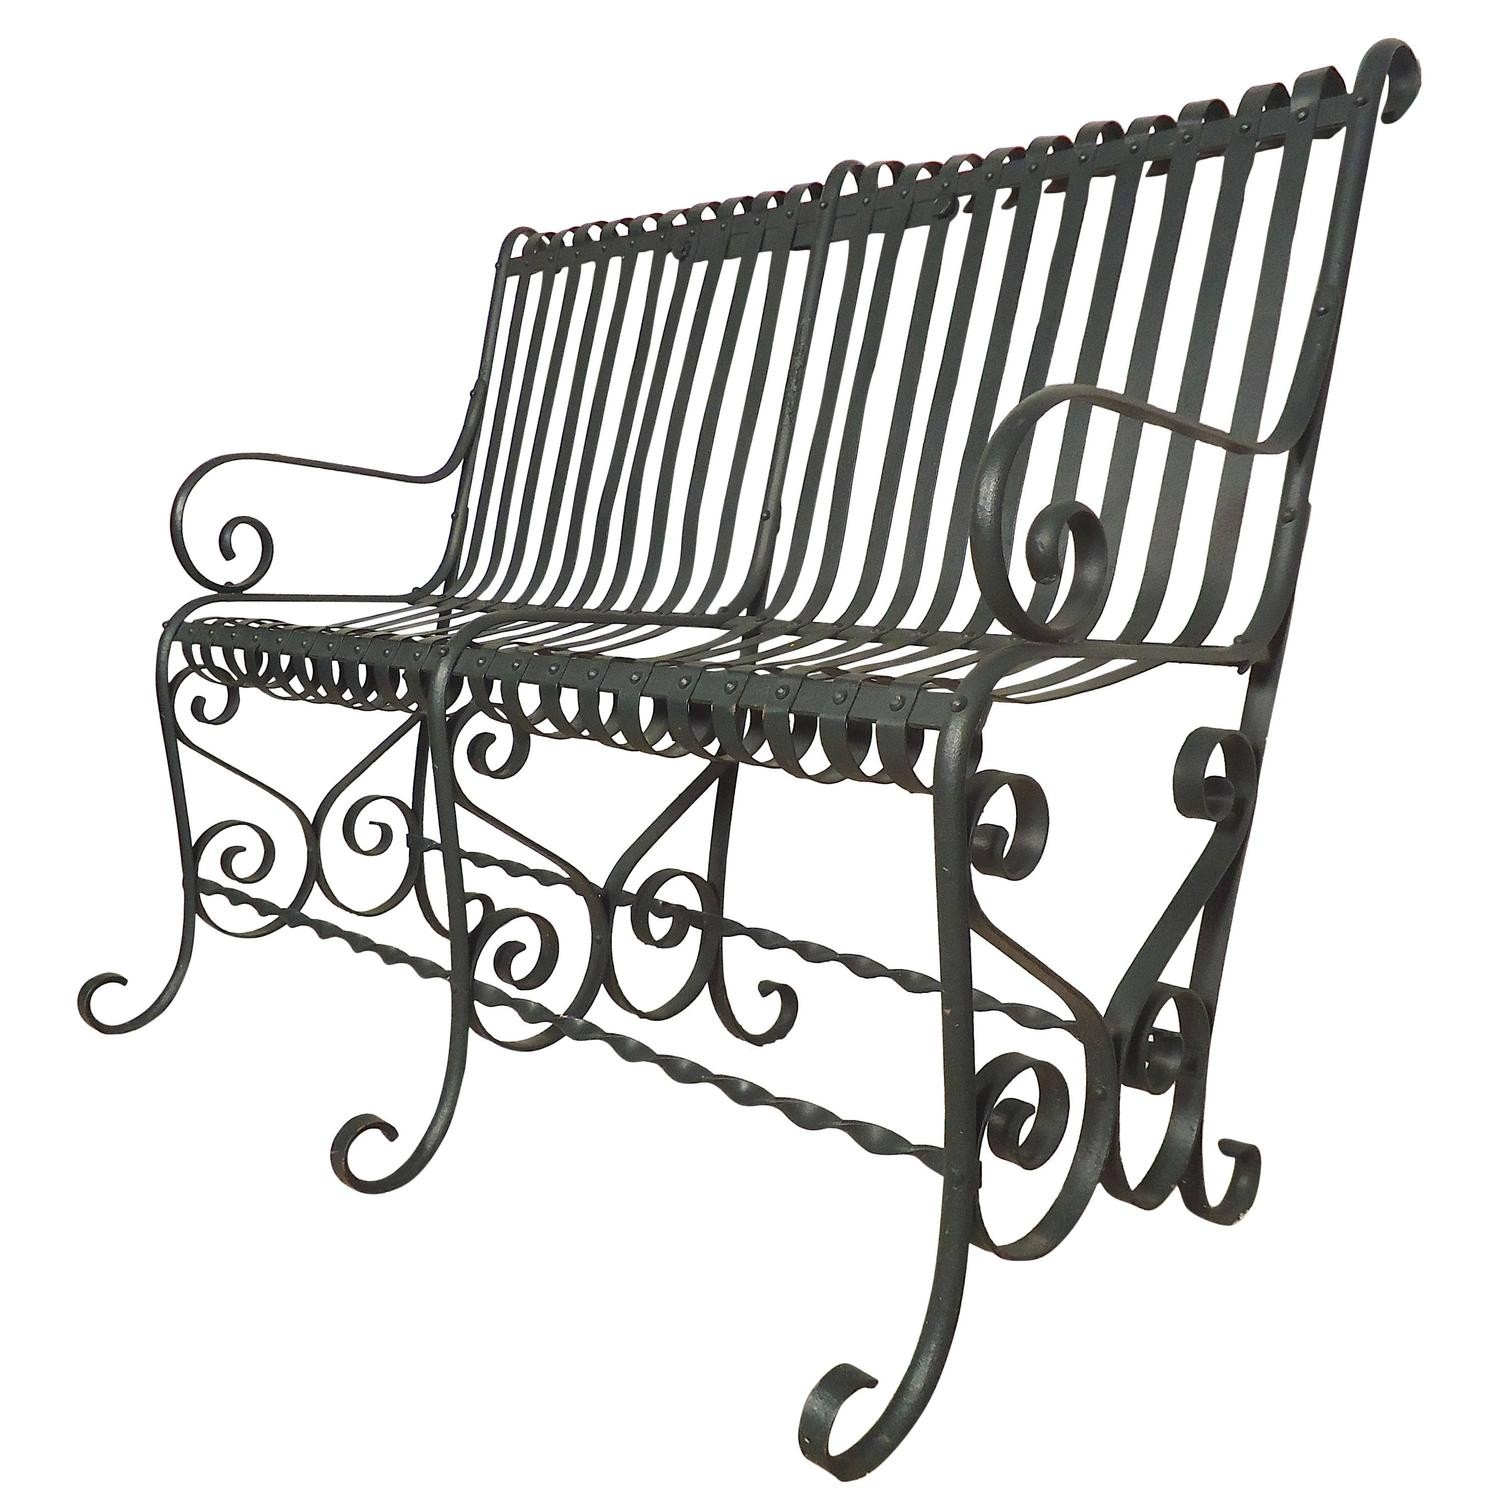 1500x1500 Bench Drawing Comfort For Free Download